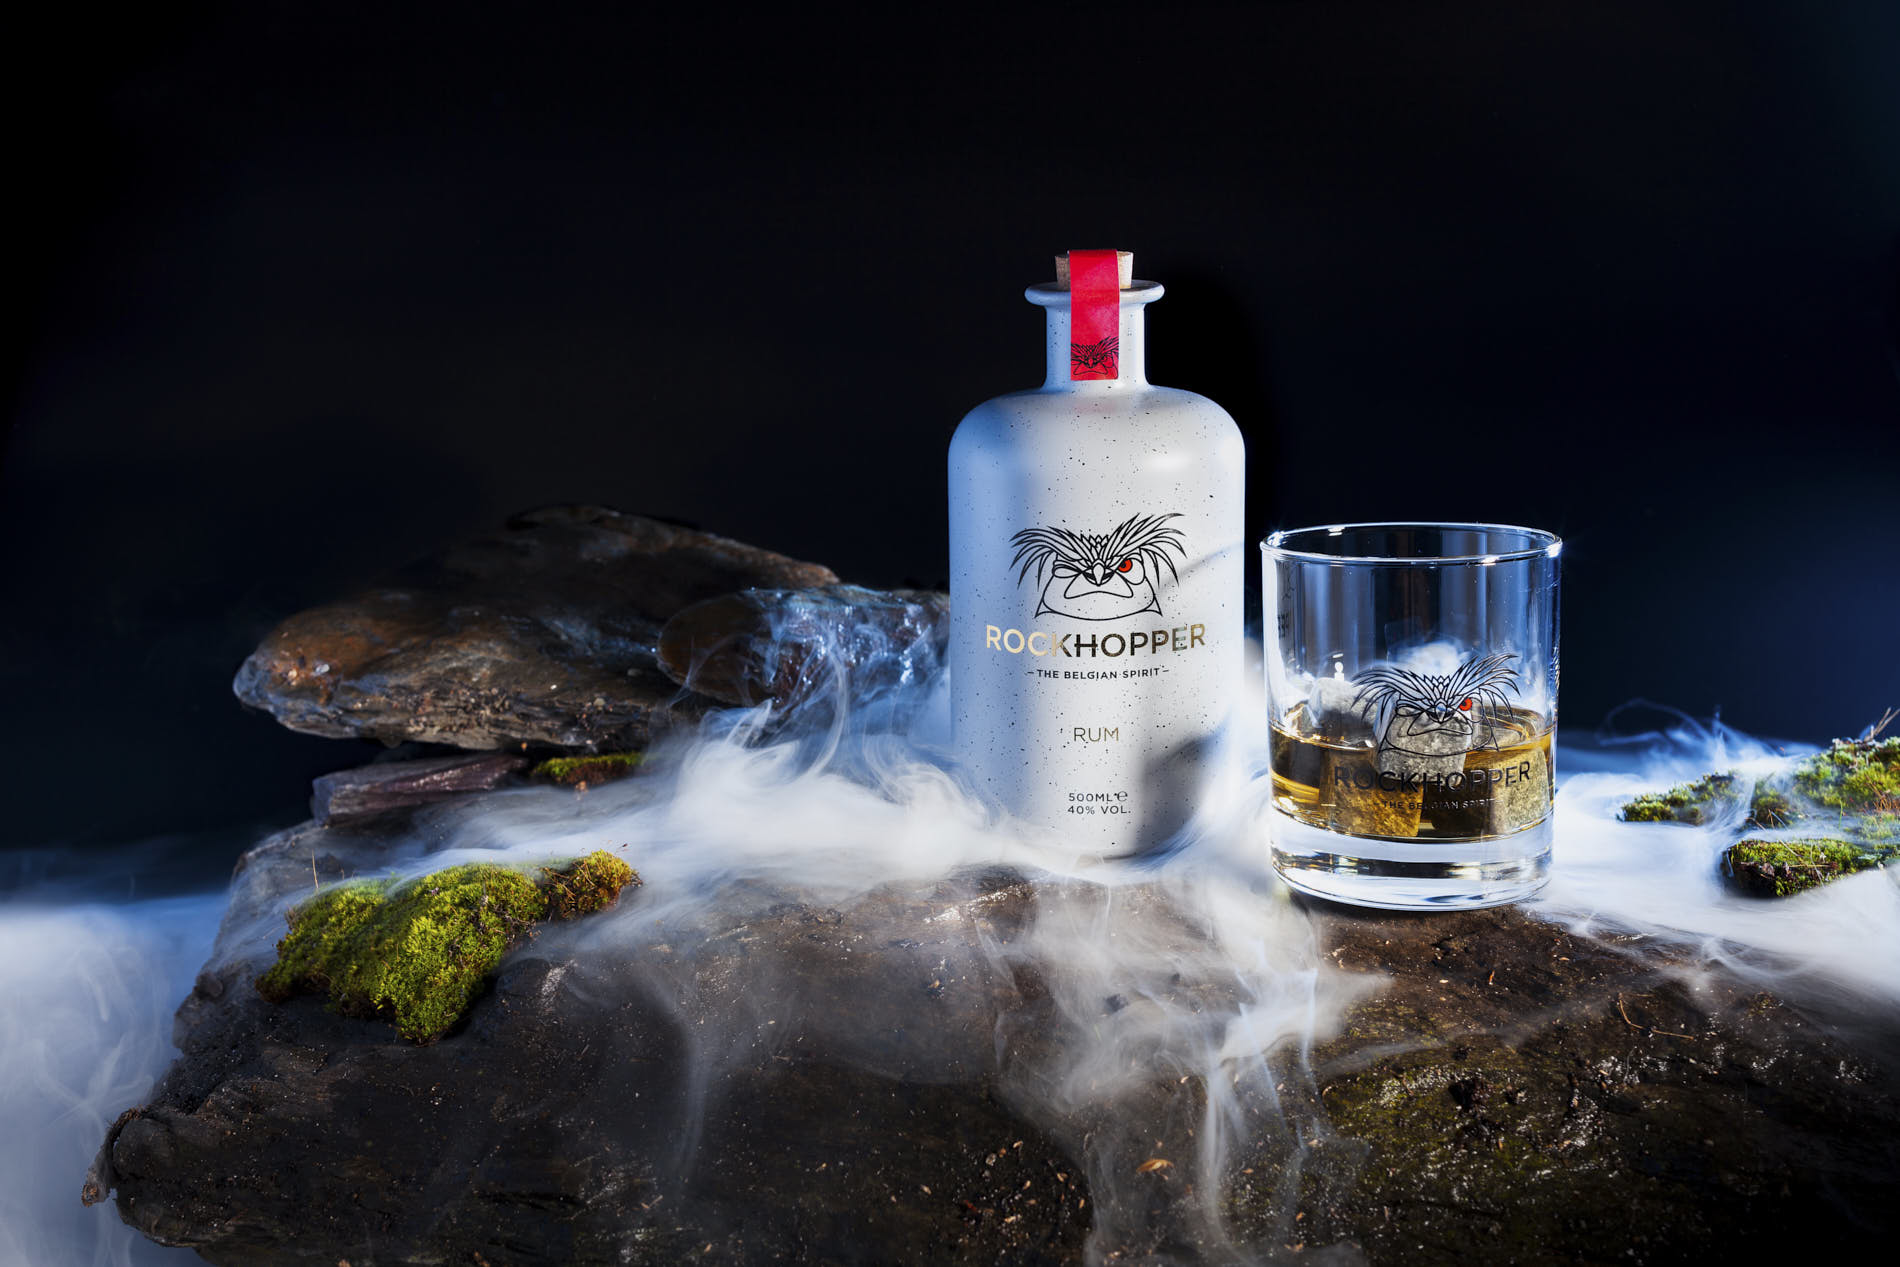 bottle of rockhopper rum and a glass on foggy stones